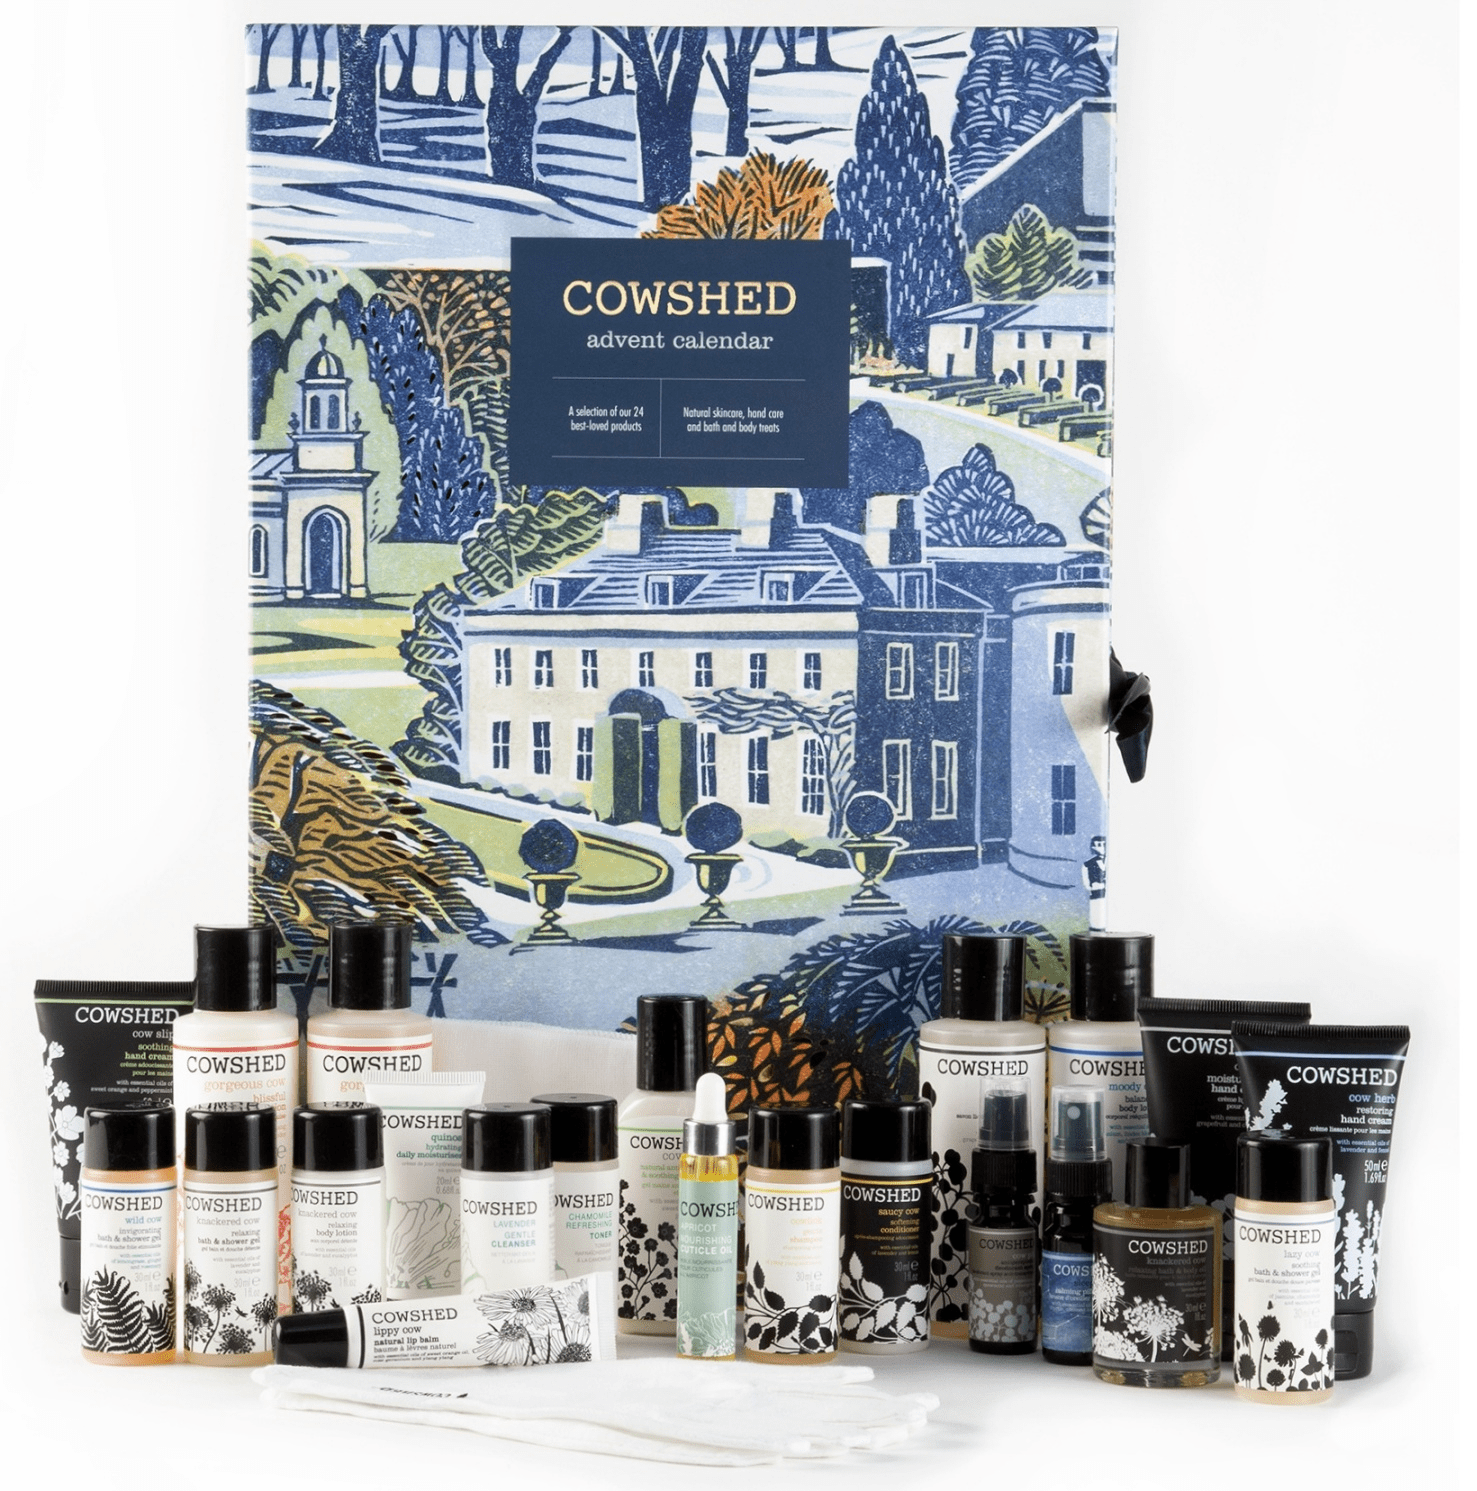 2018 Cowshed Advent Calendar Coming Soon + Full Spoilers!